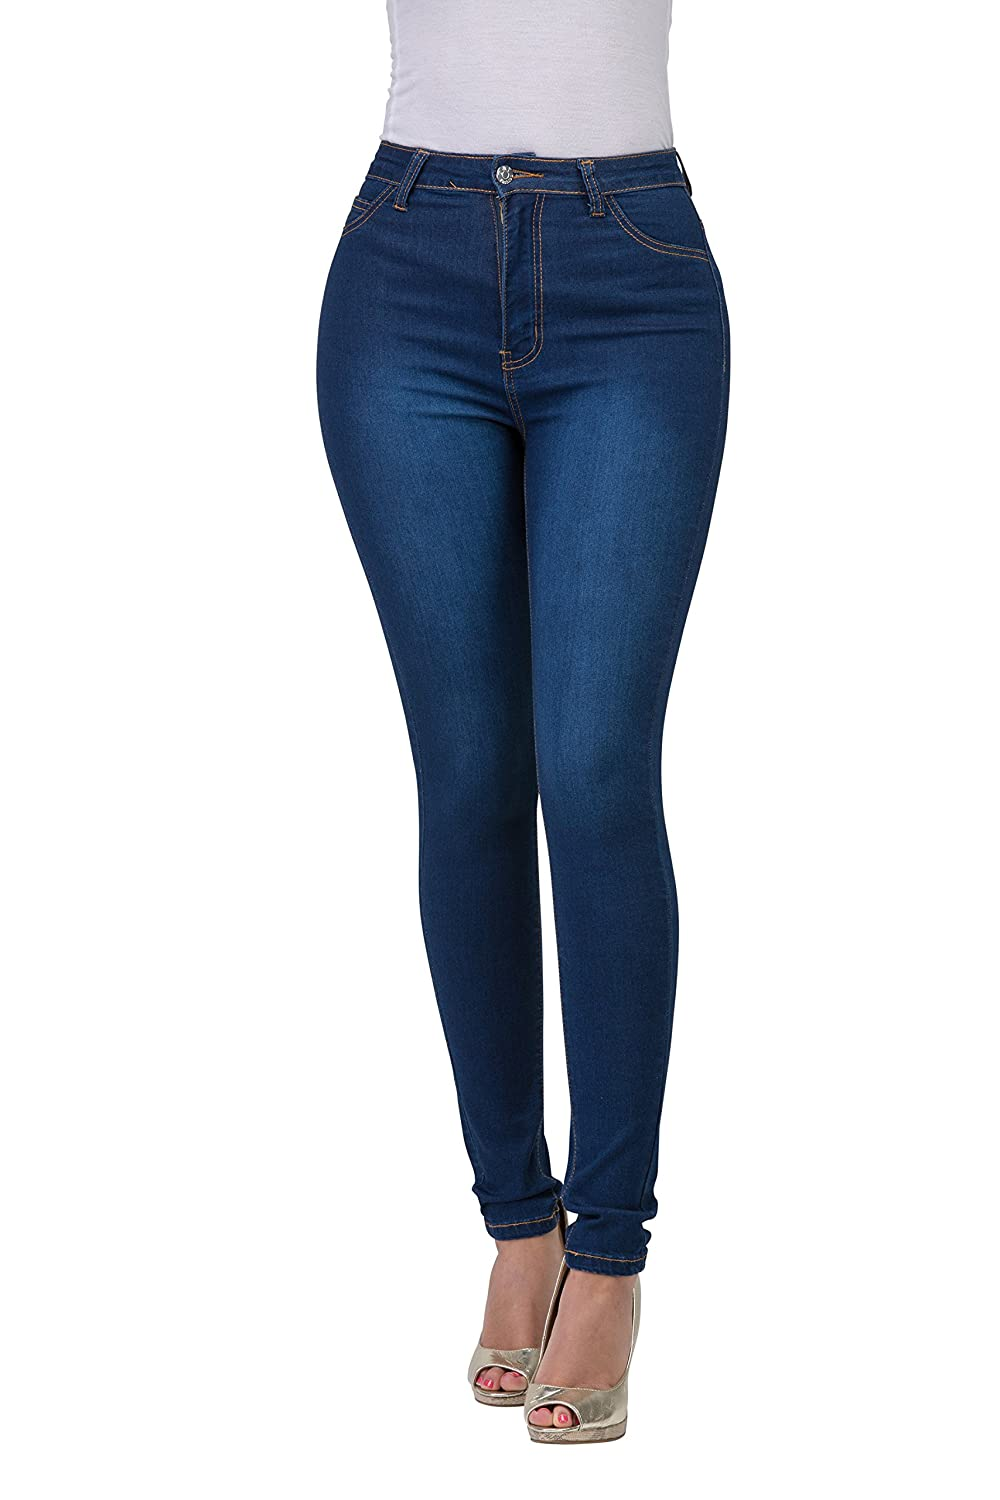 143Fashion High Rise-Waisted Women Juniors Colored Stretchy Skinny Butt Lift Jeans Plus Size